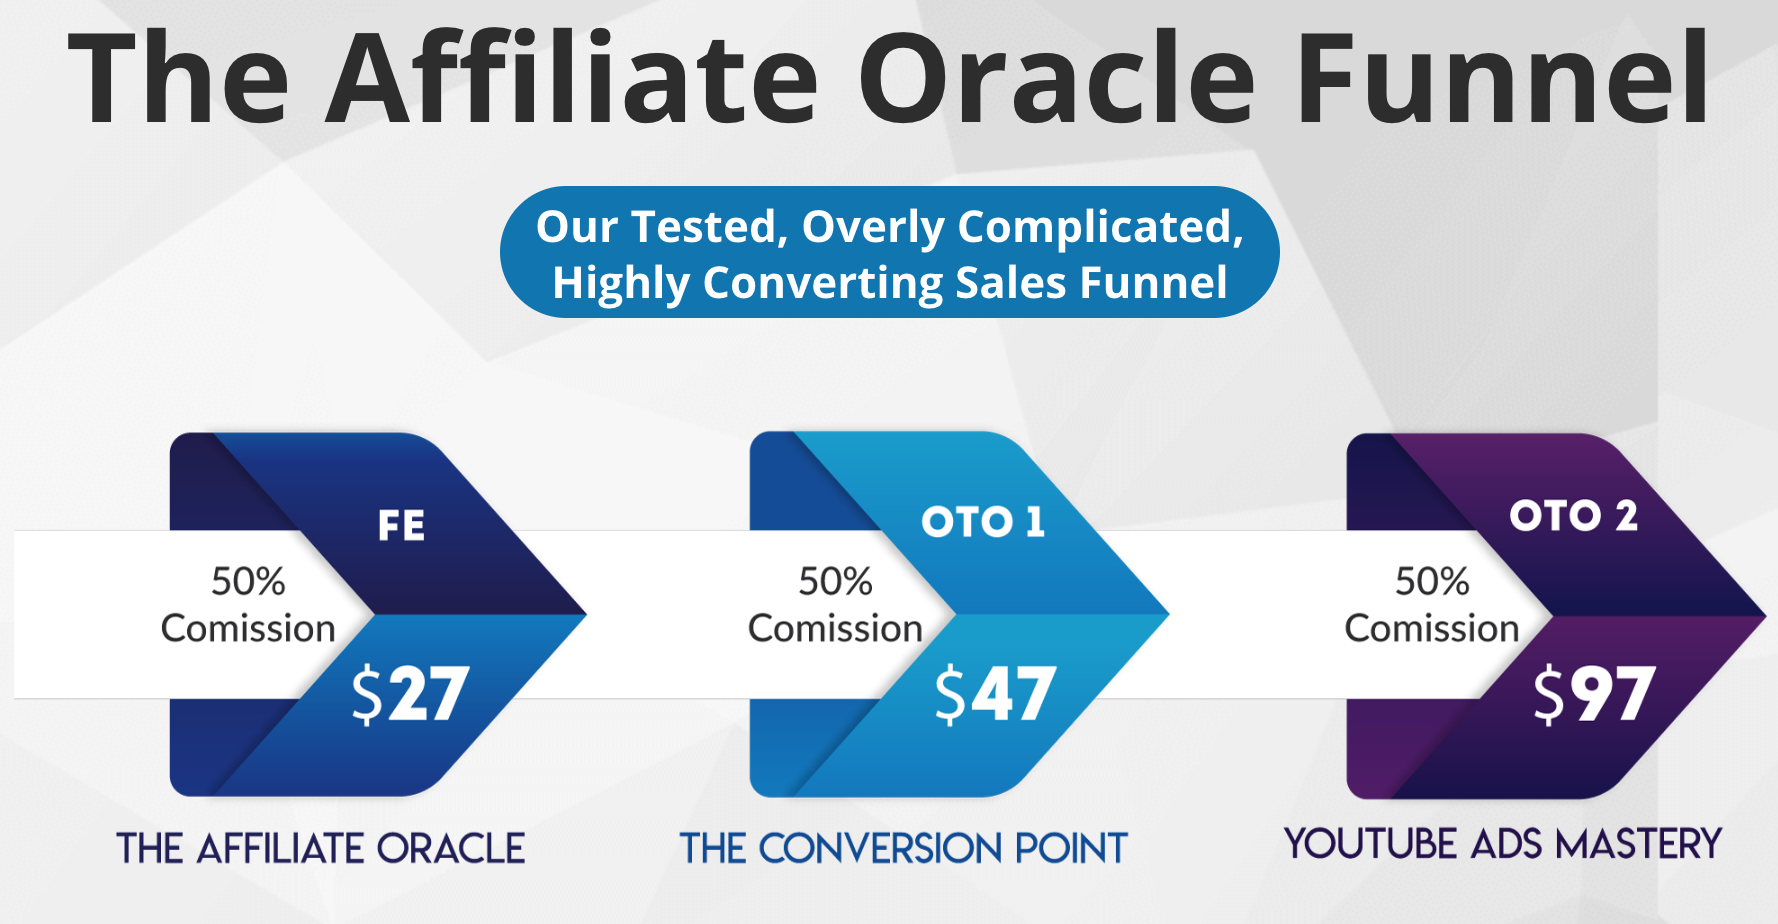 Affiliate Oracle Funnel